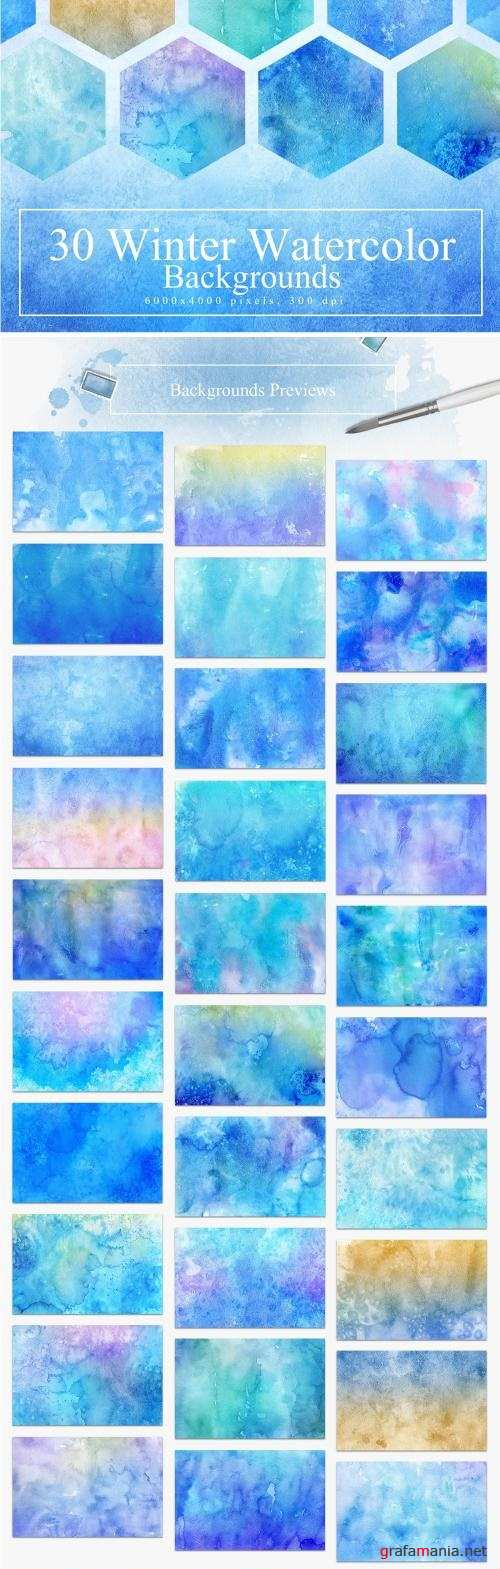 30 Winter Watercolor Backgrounds - 2301265